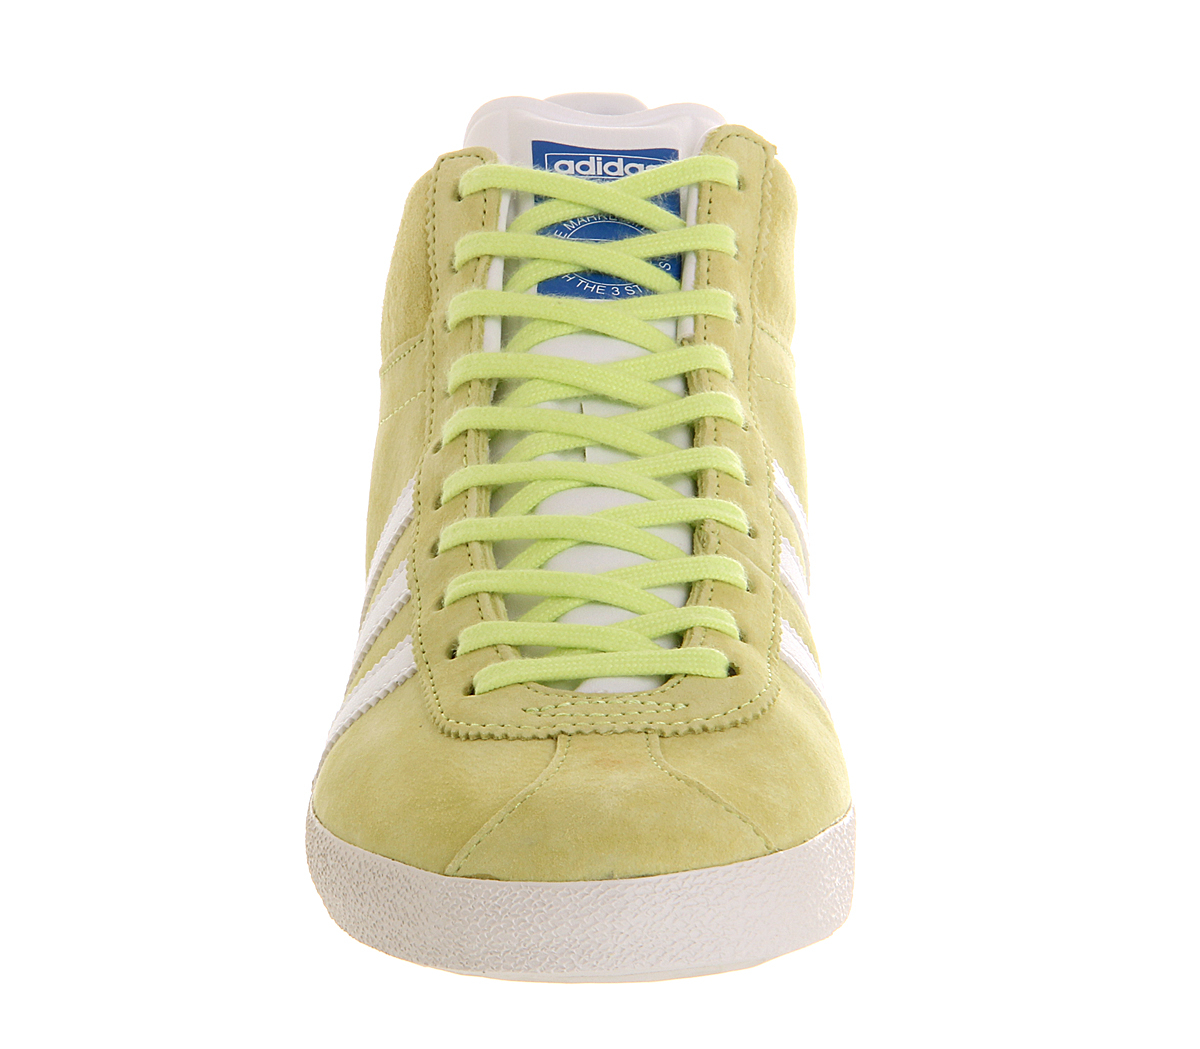 newest dc814 67796 Lyst - adidas Gazelle Og Mid in Yellow for Men